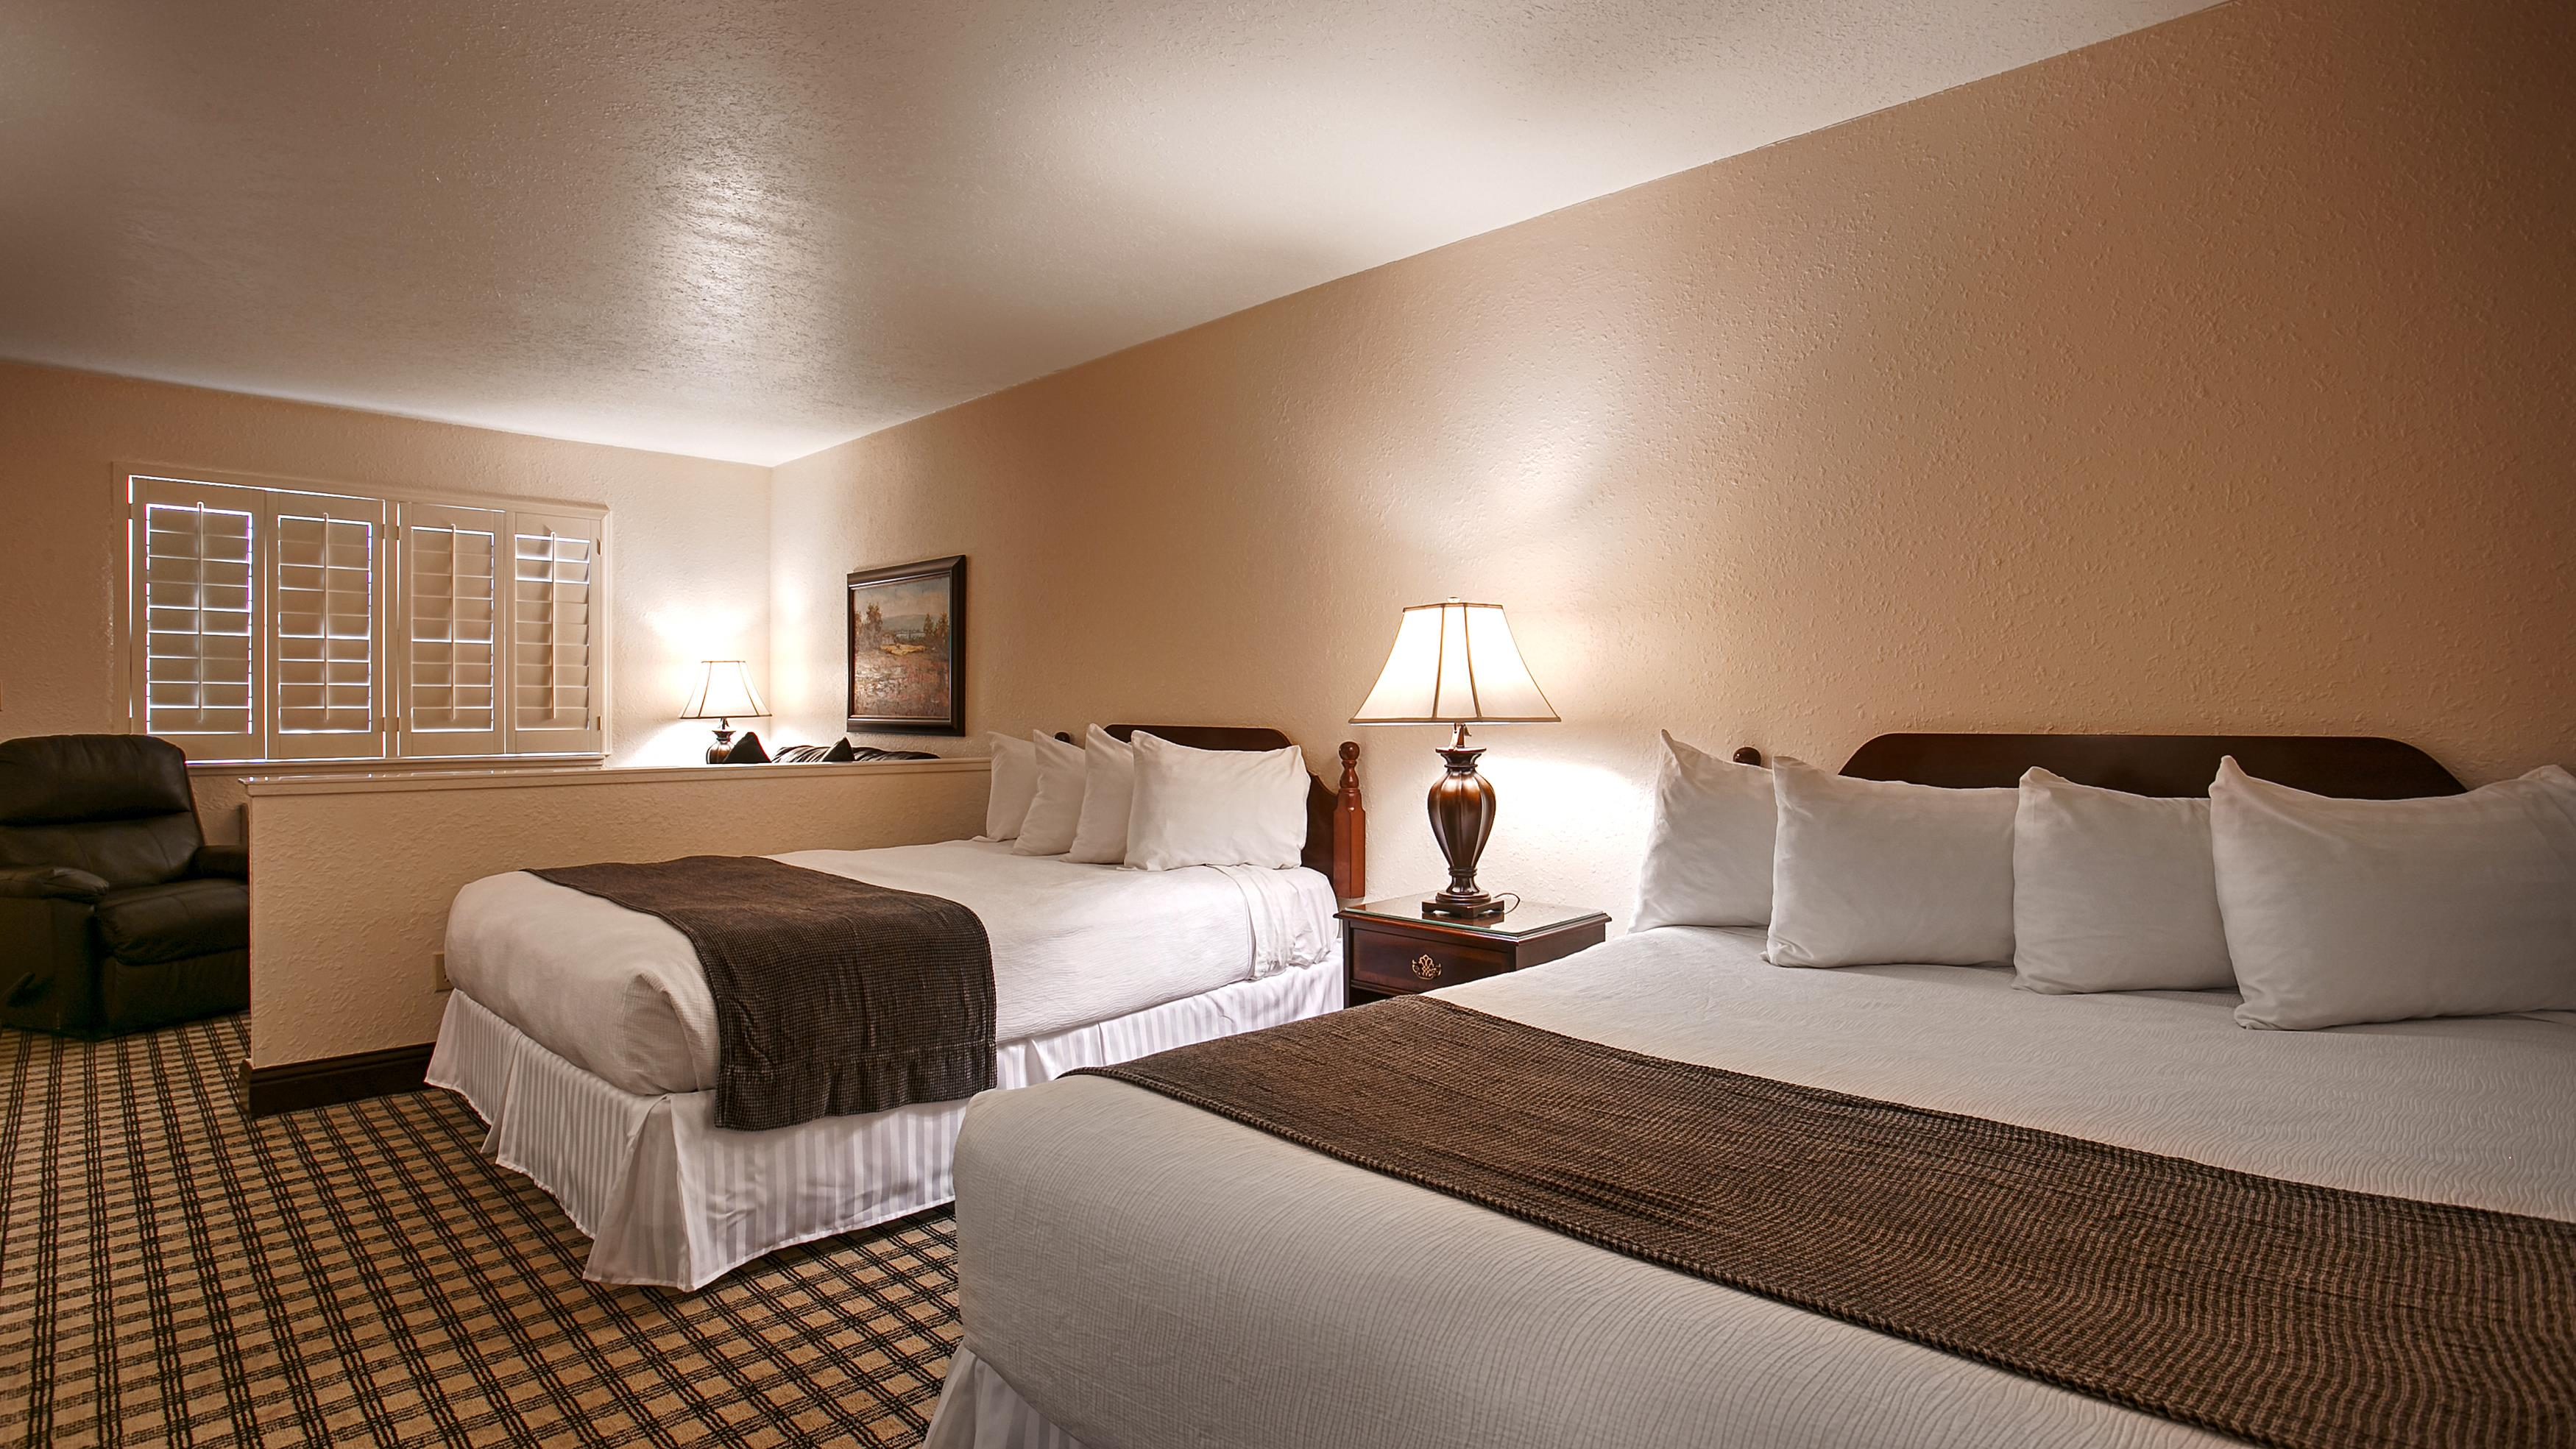 Best Western Trailside Inn, Susanville CA